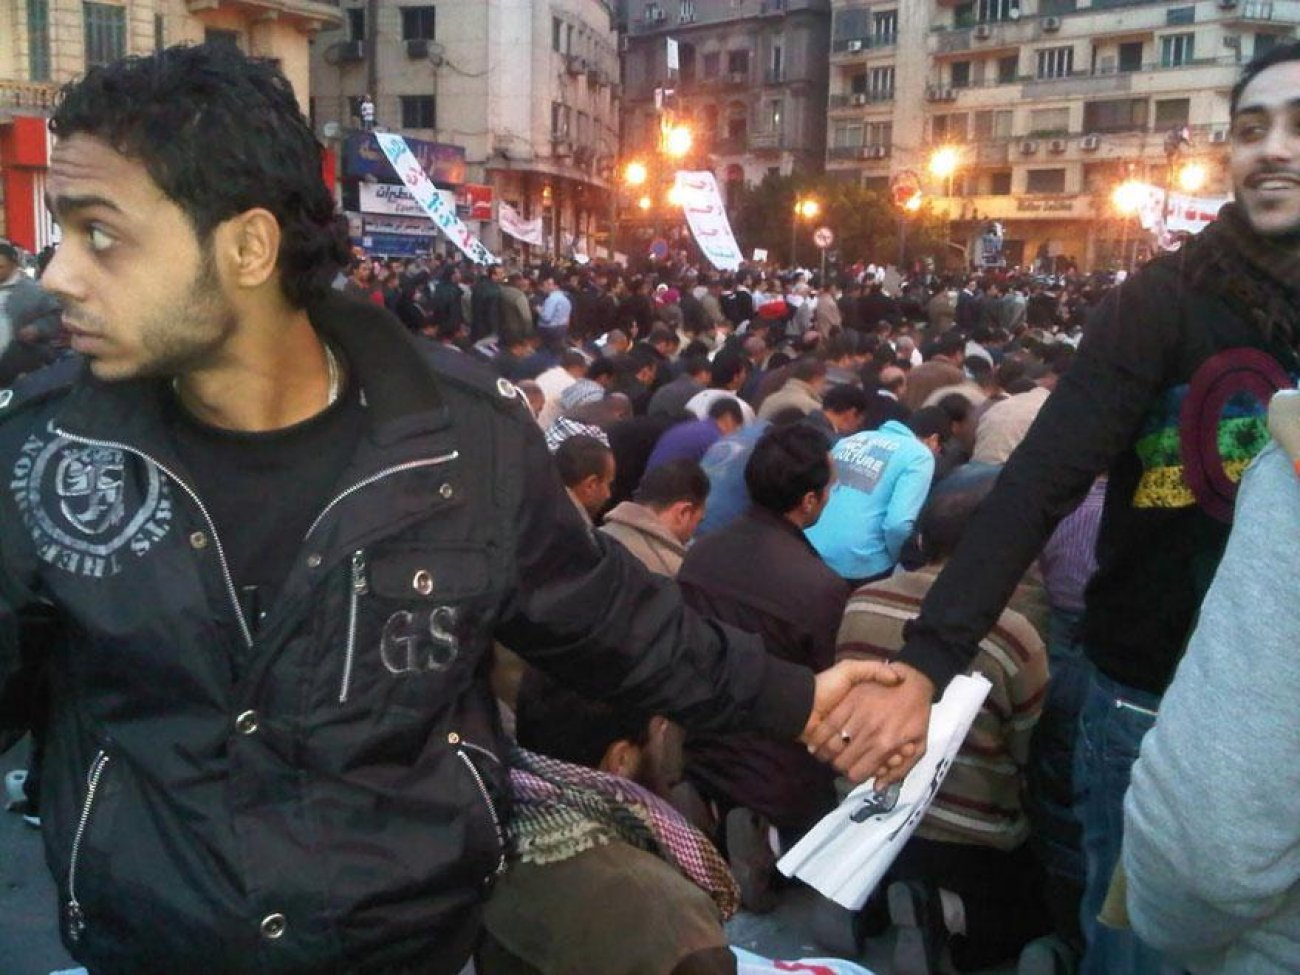 February 2011, Egypt Christians join hands to protect Muslims as they pray during Cairo protests.